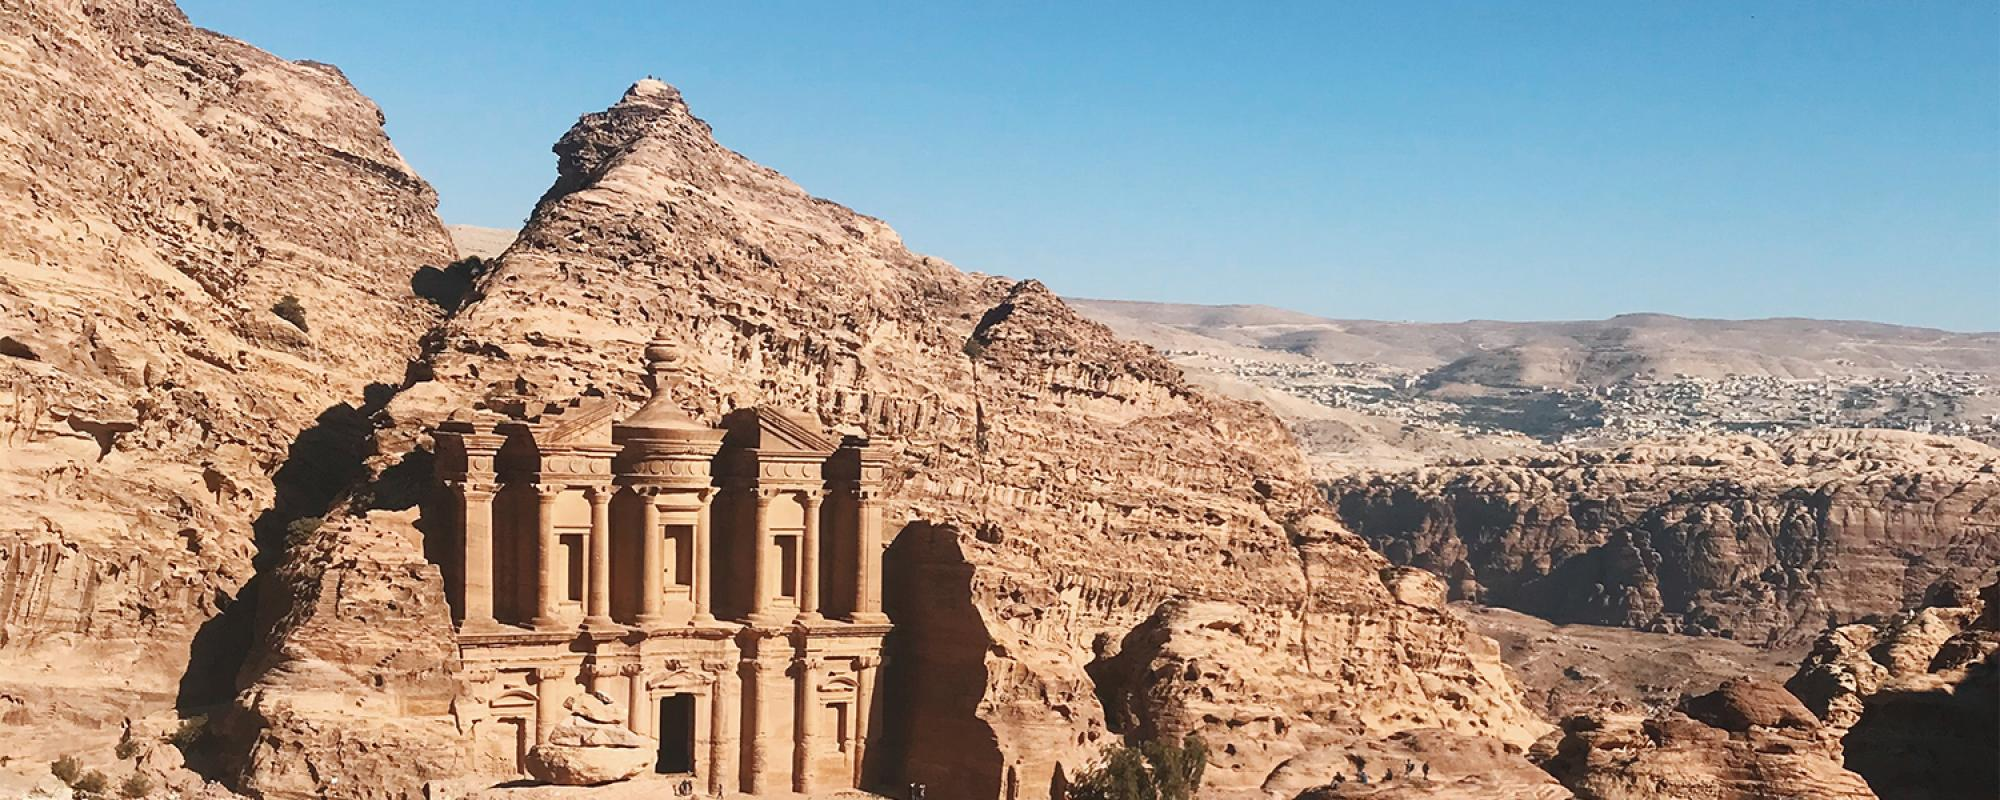 Beautiful ancient temple in Petra, Jordan.